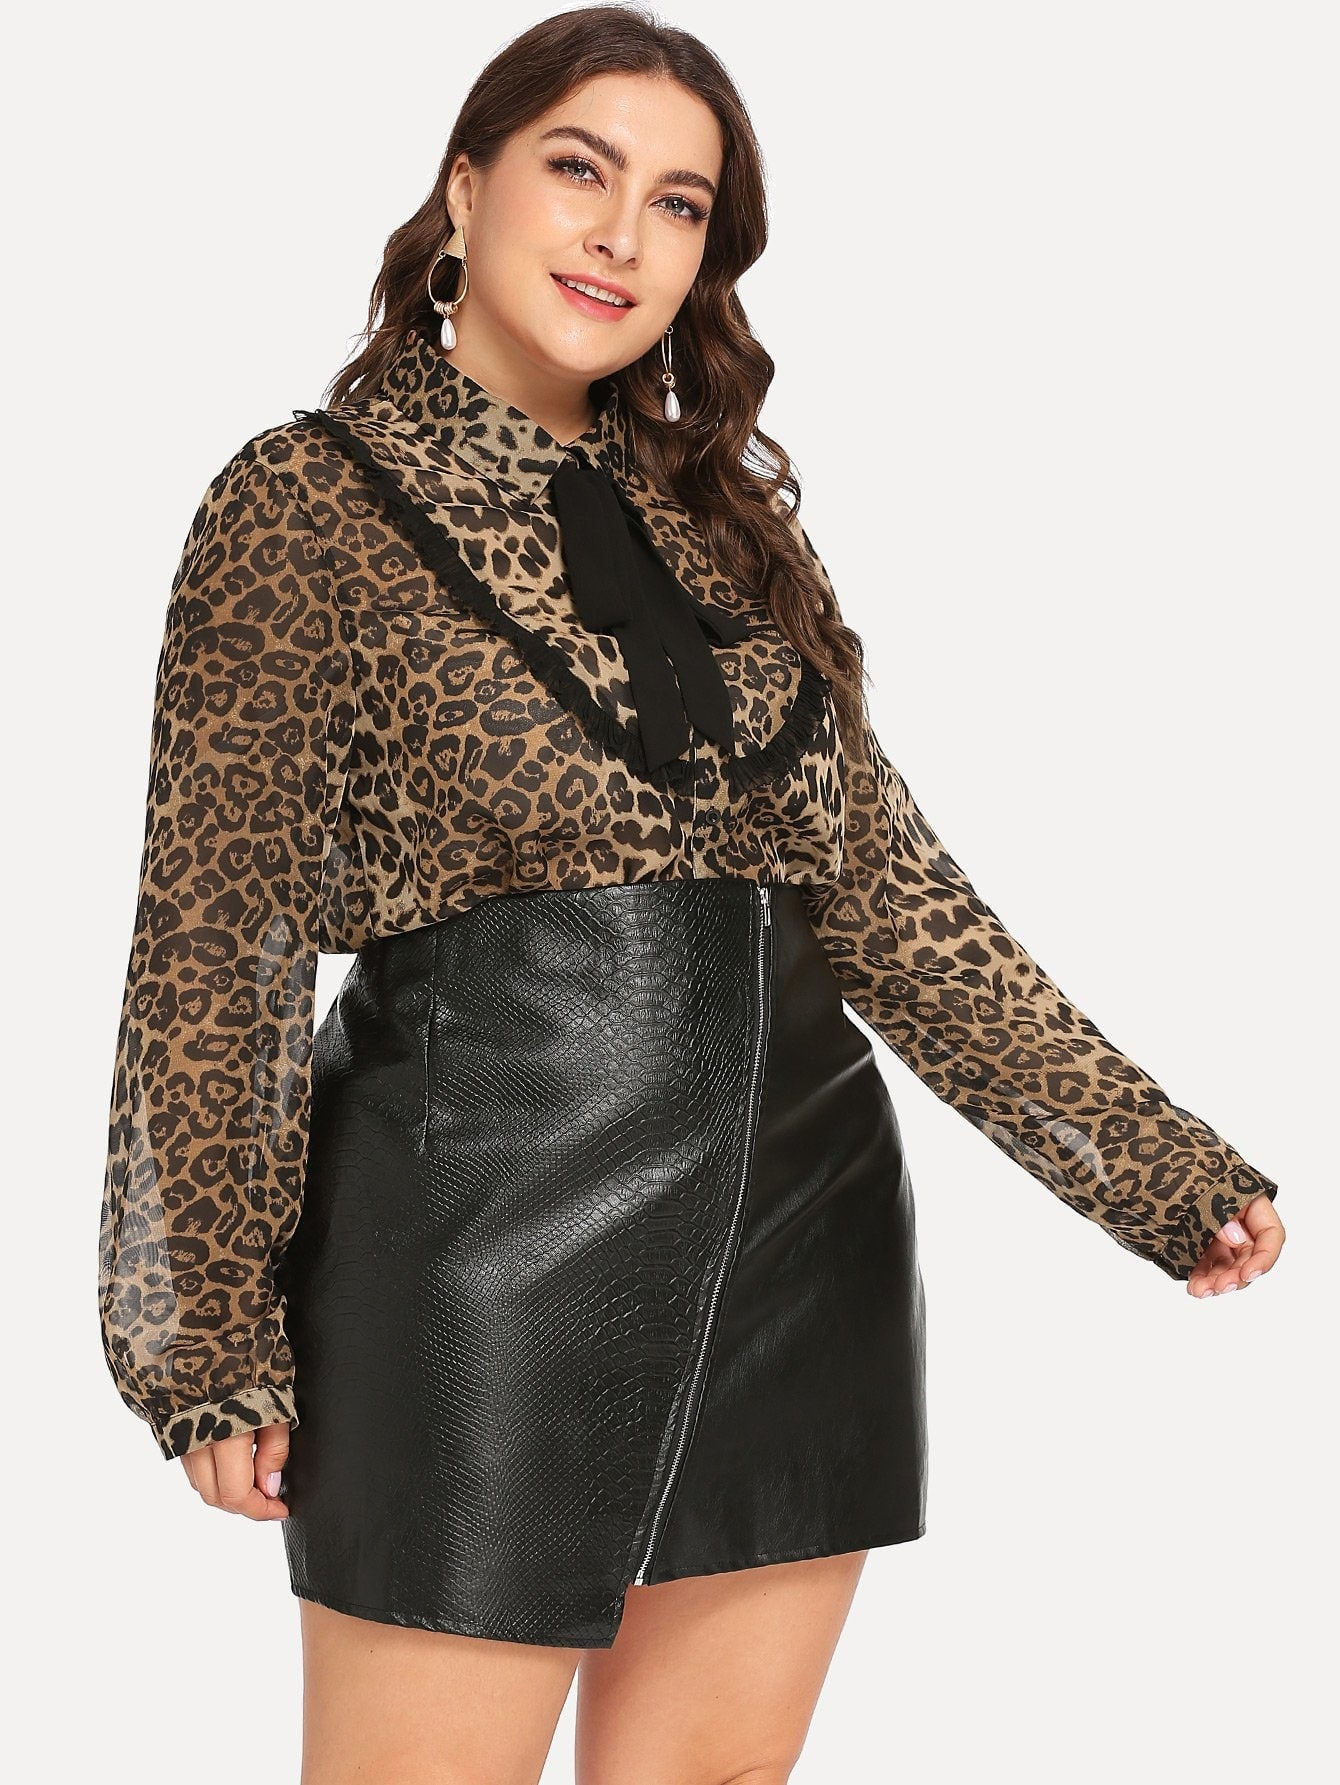 Plus Size Long Sleeve Leopard Print Blouse | Plus Size Top | SHEIN | Joan & Vern's Apparel